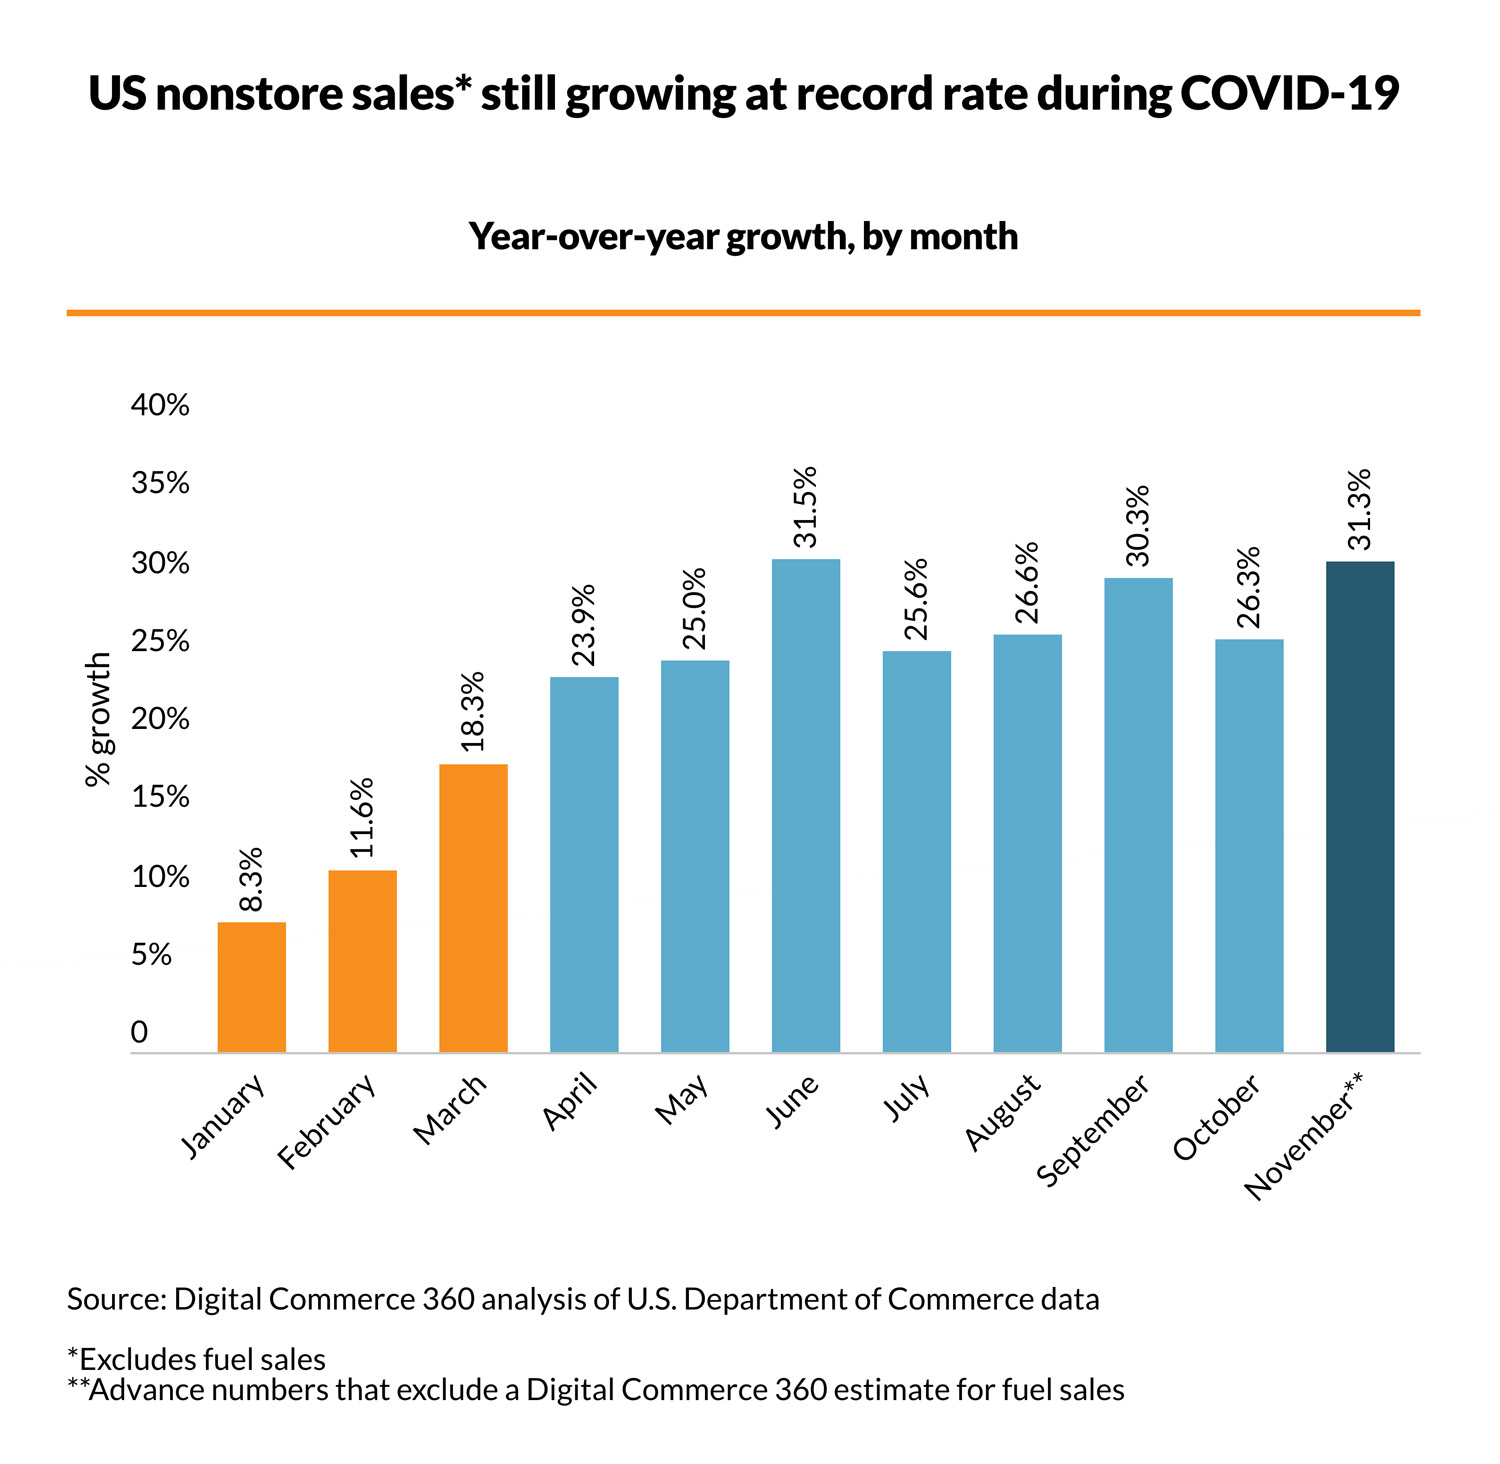 US nonstore sales still growing at record rate during COVID-19